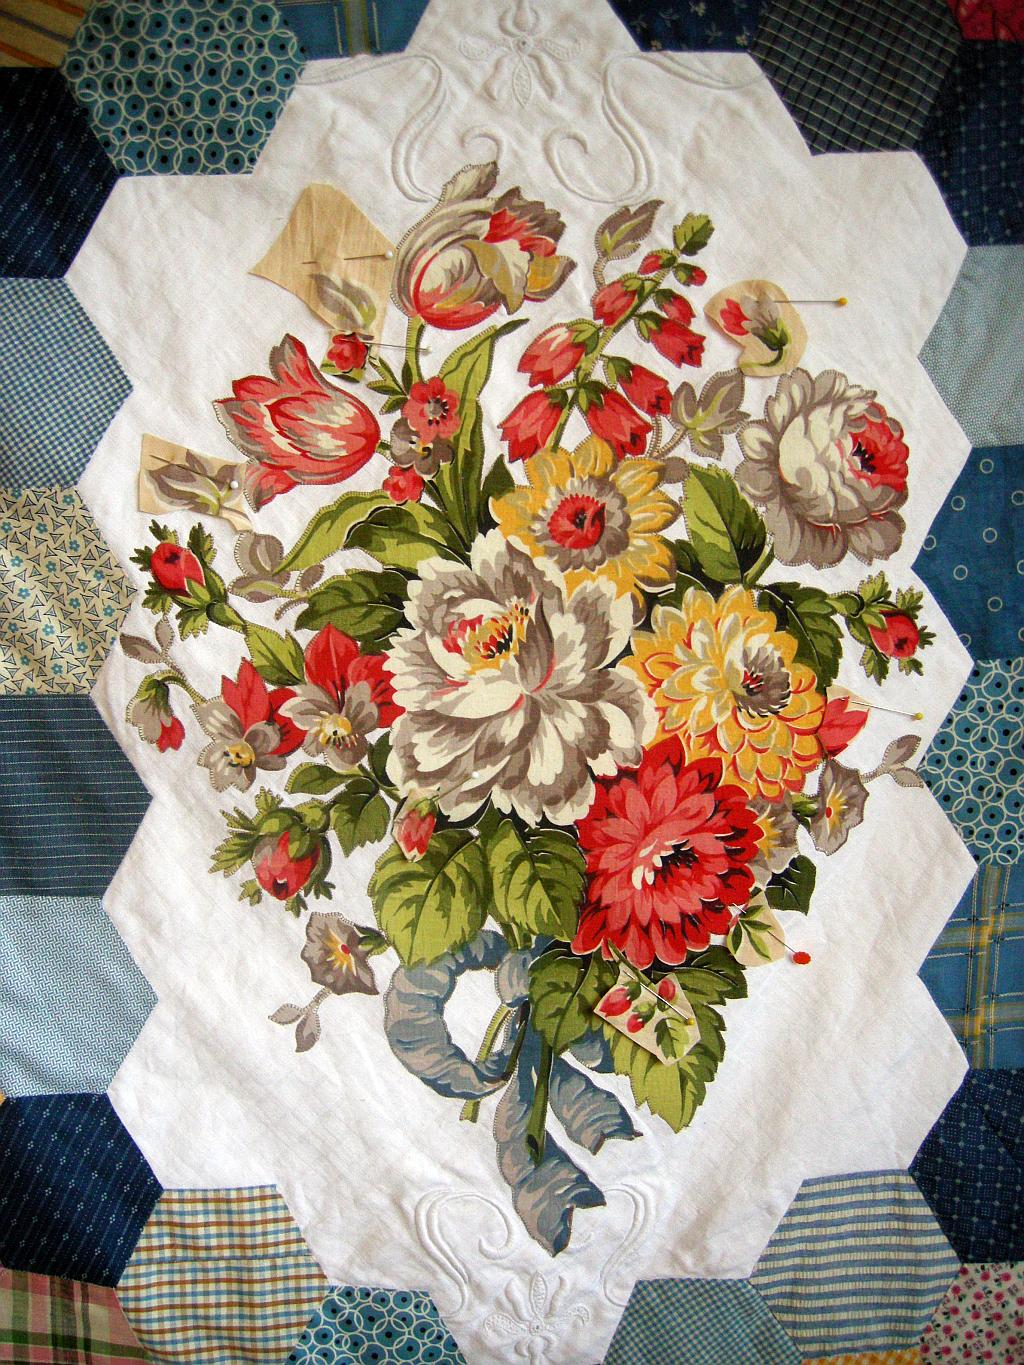 Allie's in Stitches: Broderie Perse Meets Crazy Quilt ...